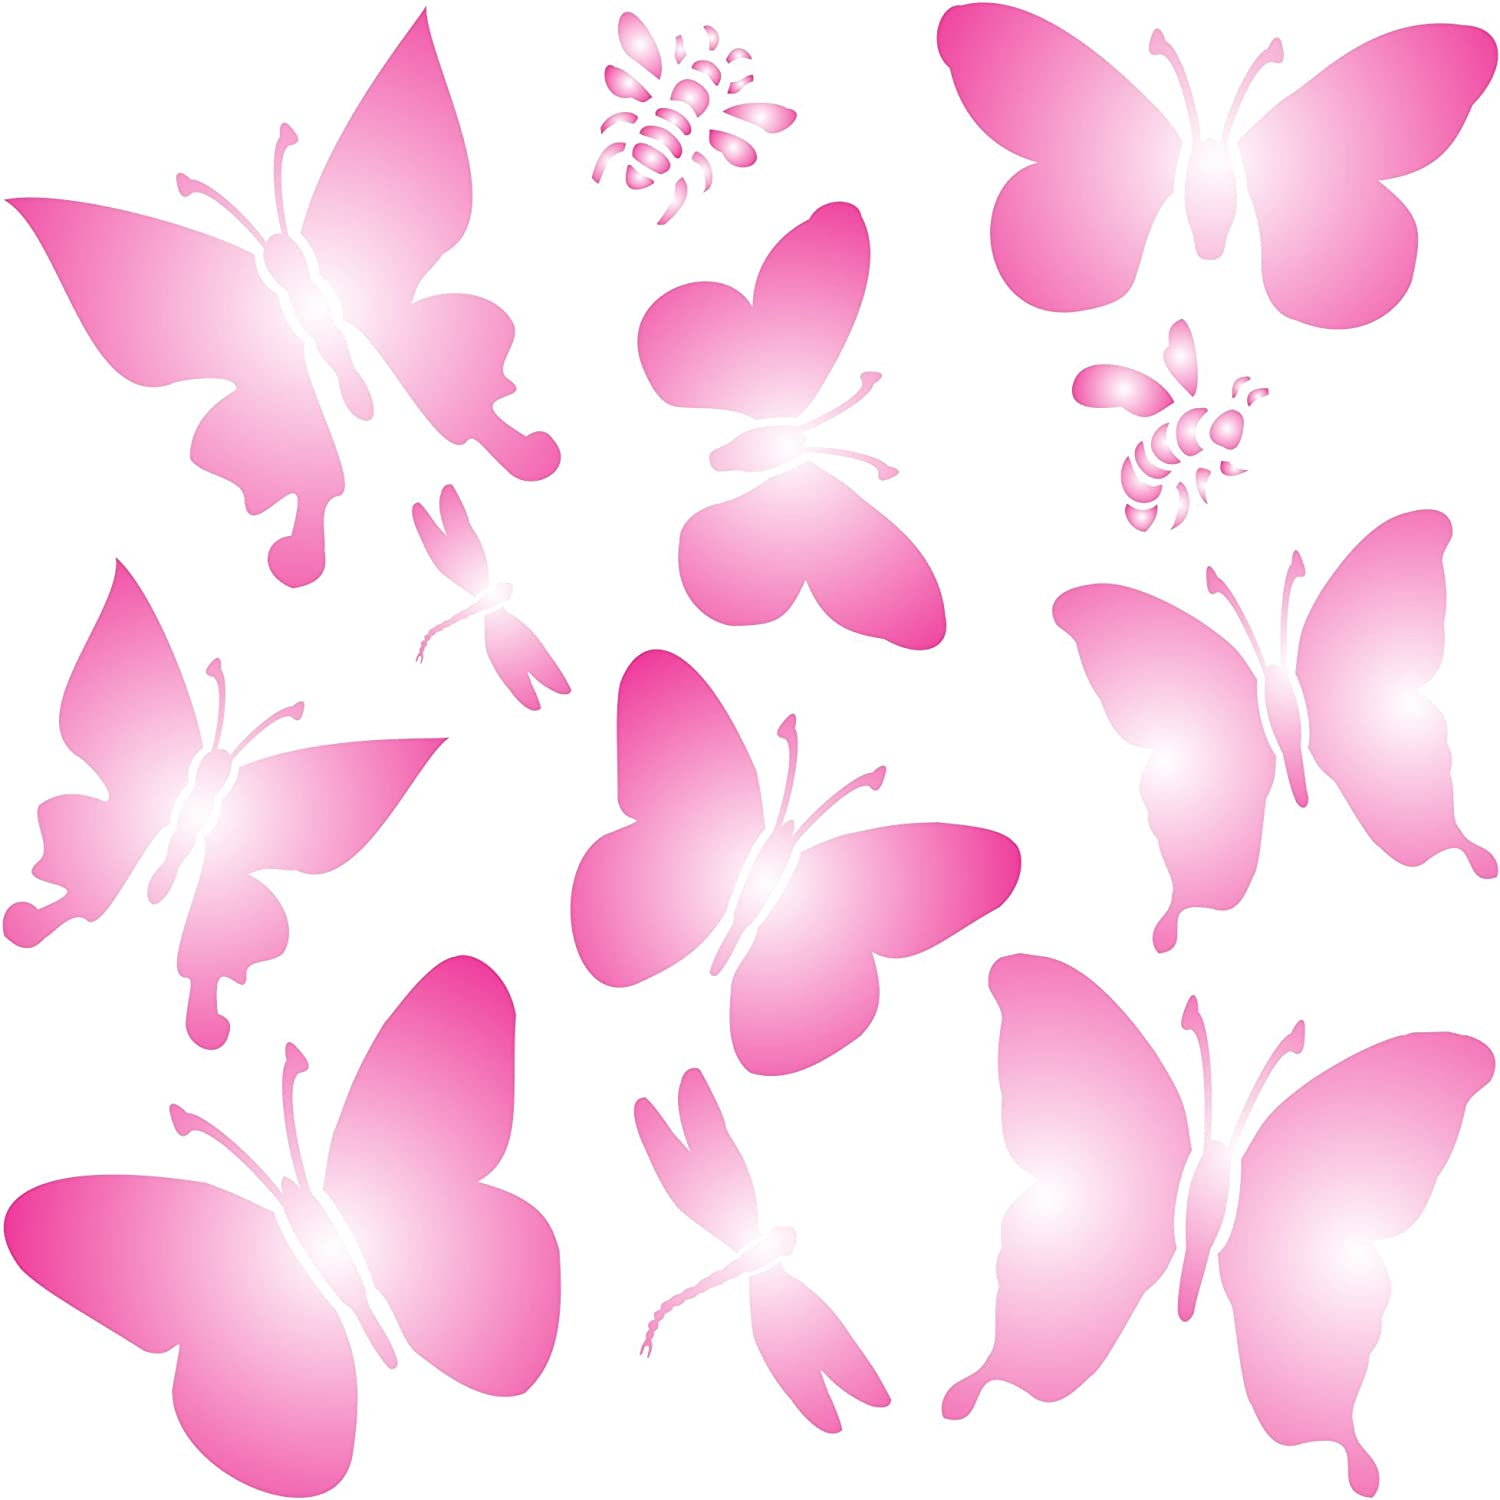 Butterflies Stencil, 8.5 x 8.5 inch (L) - Mix Media Layering Butterfly Stencils for Painting Template